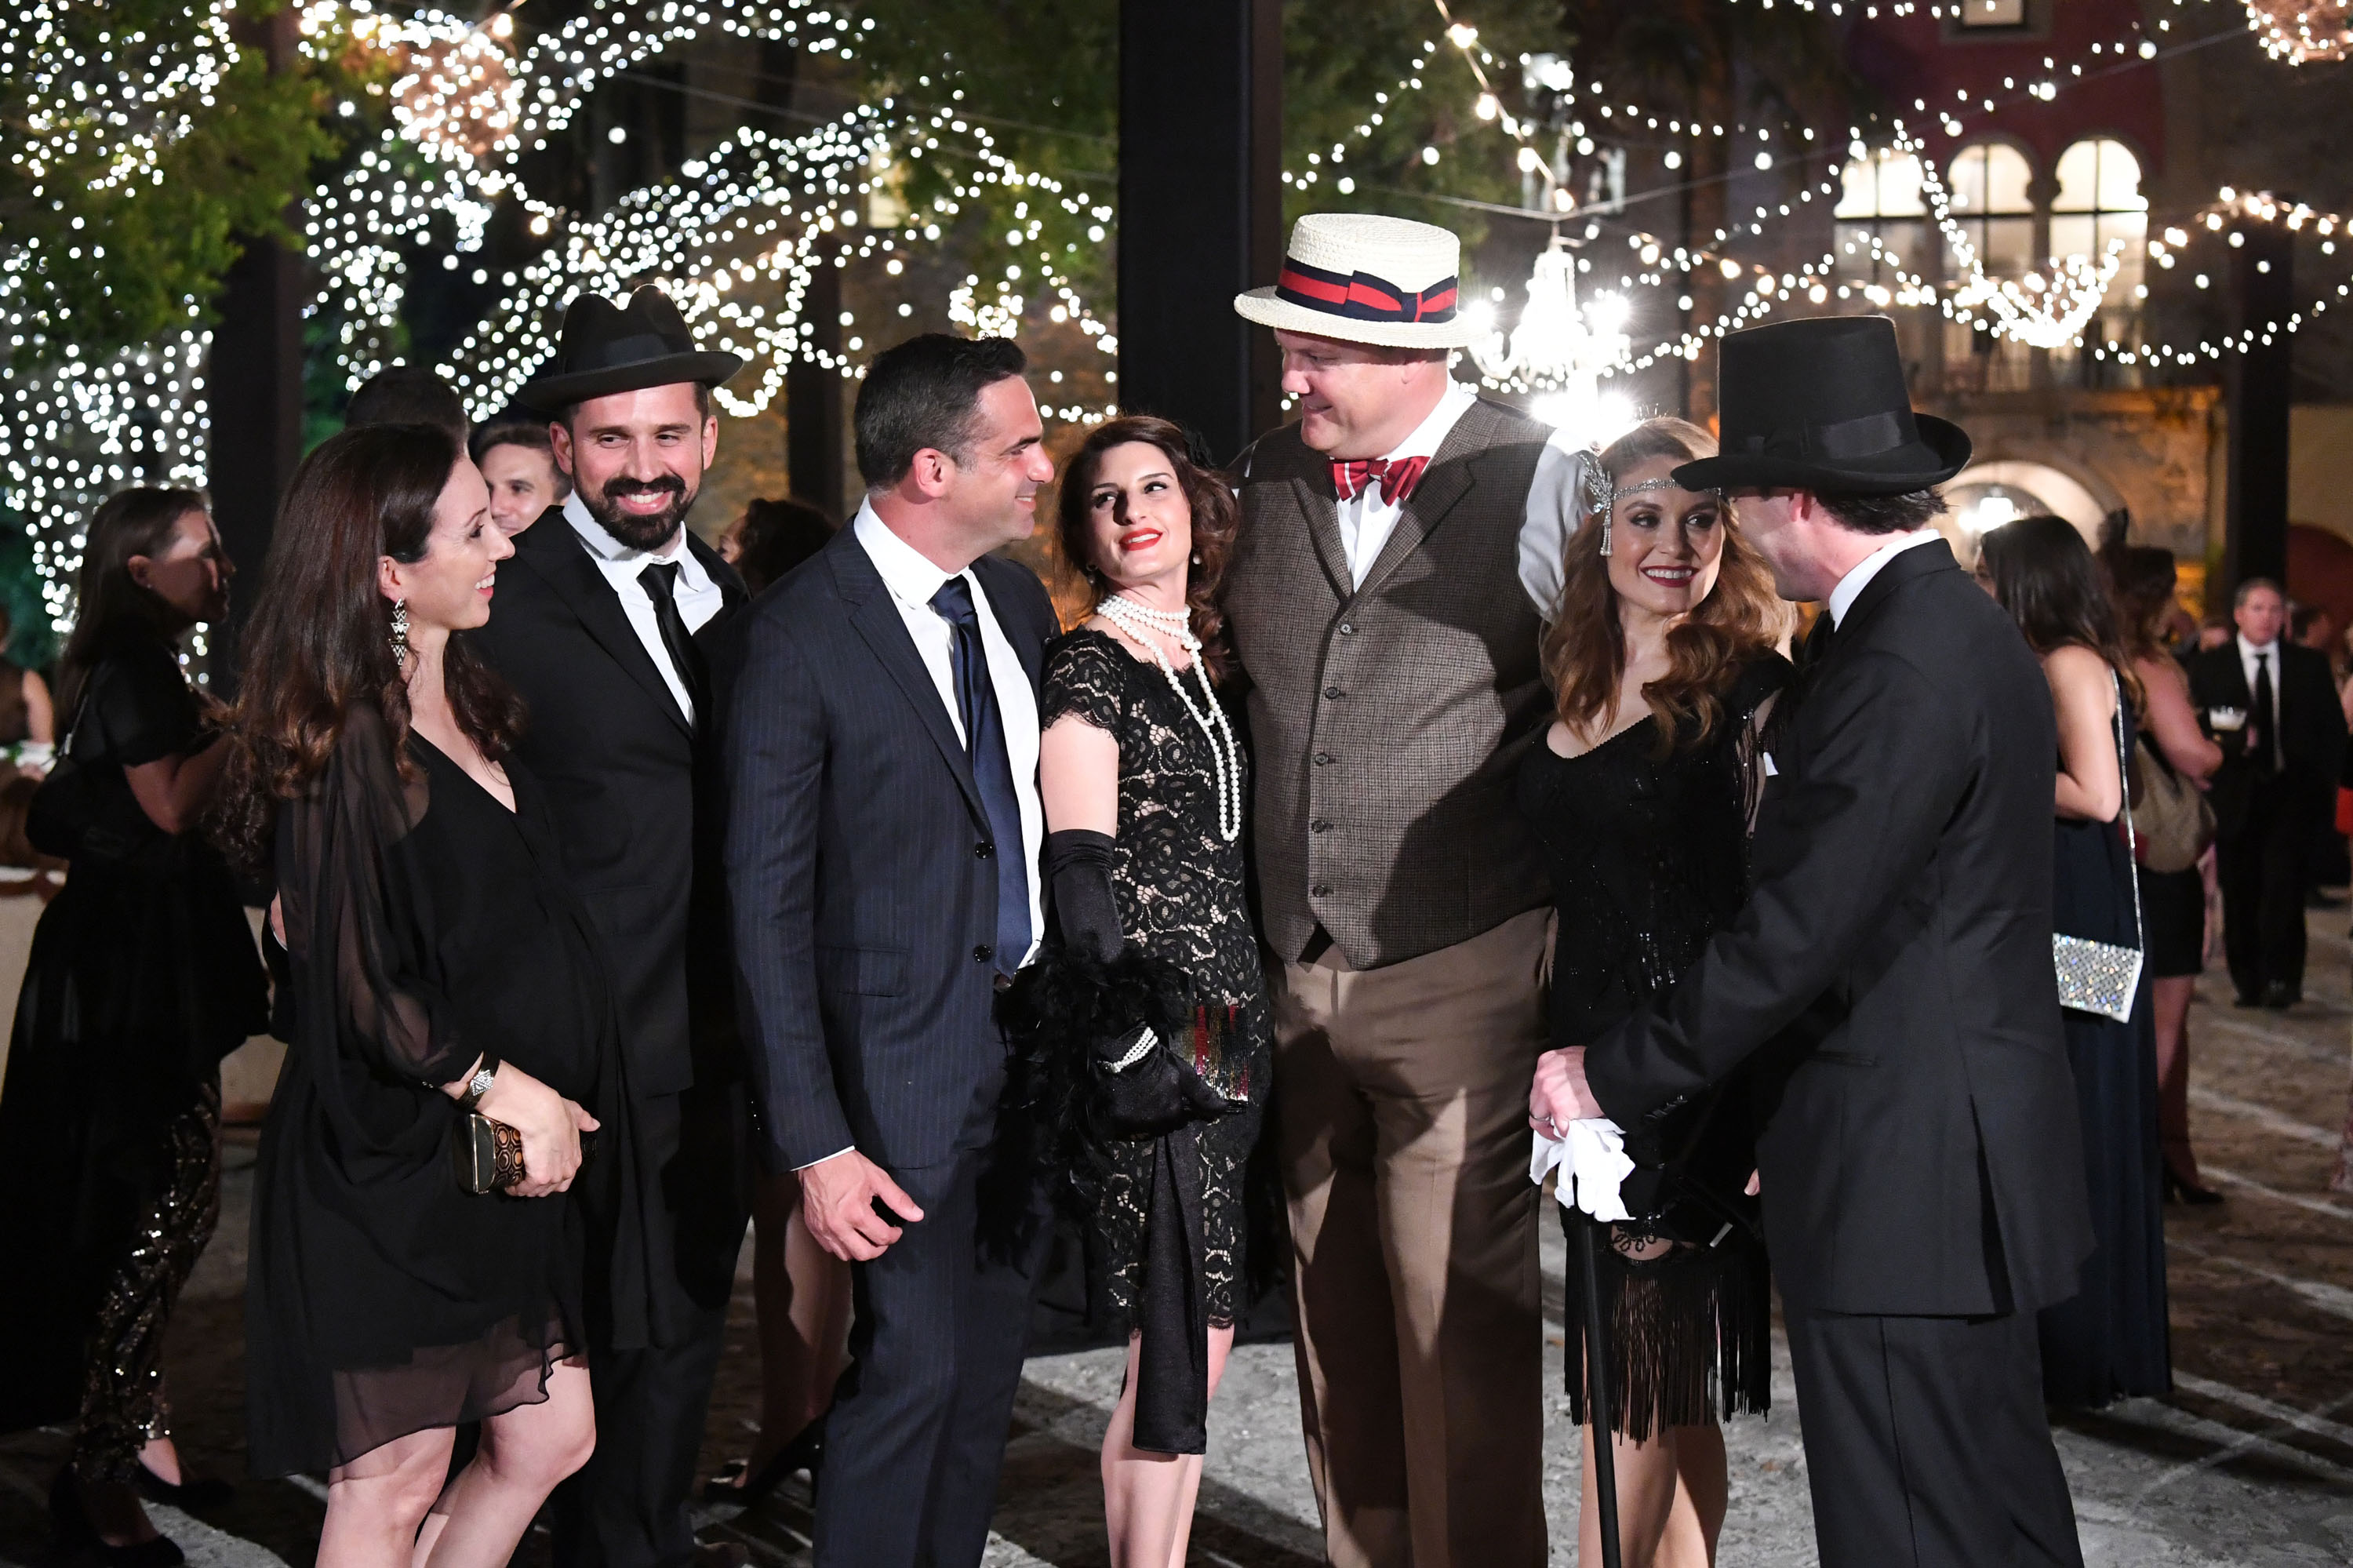 Group dressed in classic 1920's clothing for Deering Estate's Spirits' Speakeasy event